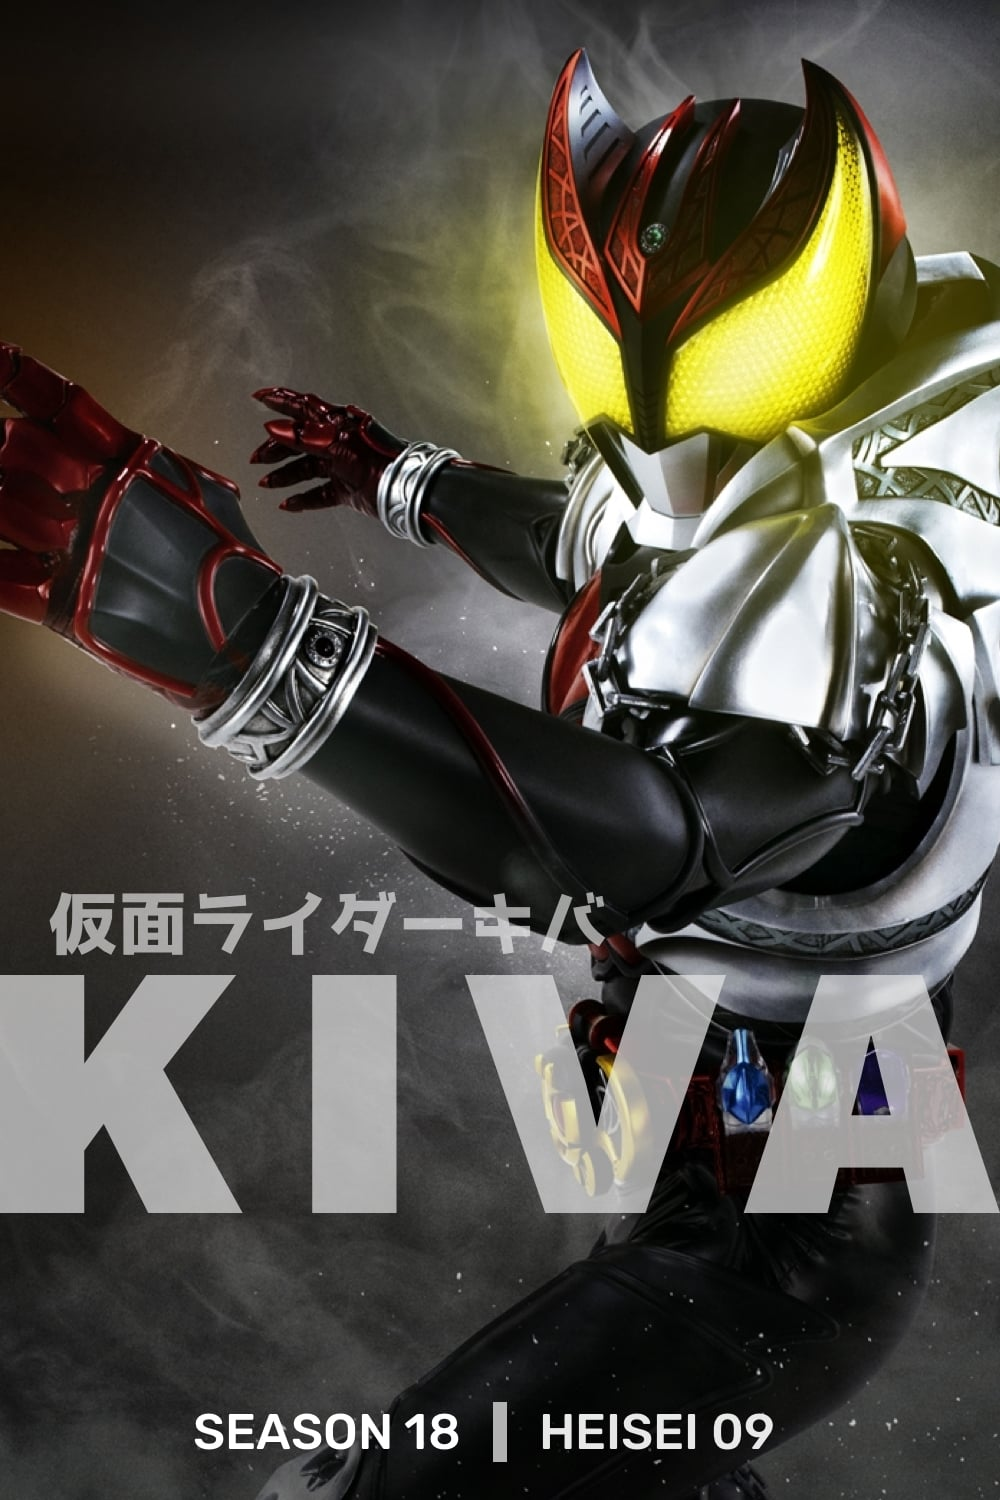 Kamen Rider - Season 21 Episode 31 : Repaying a Favor, Scheme, Purple Medals Season 18